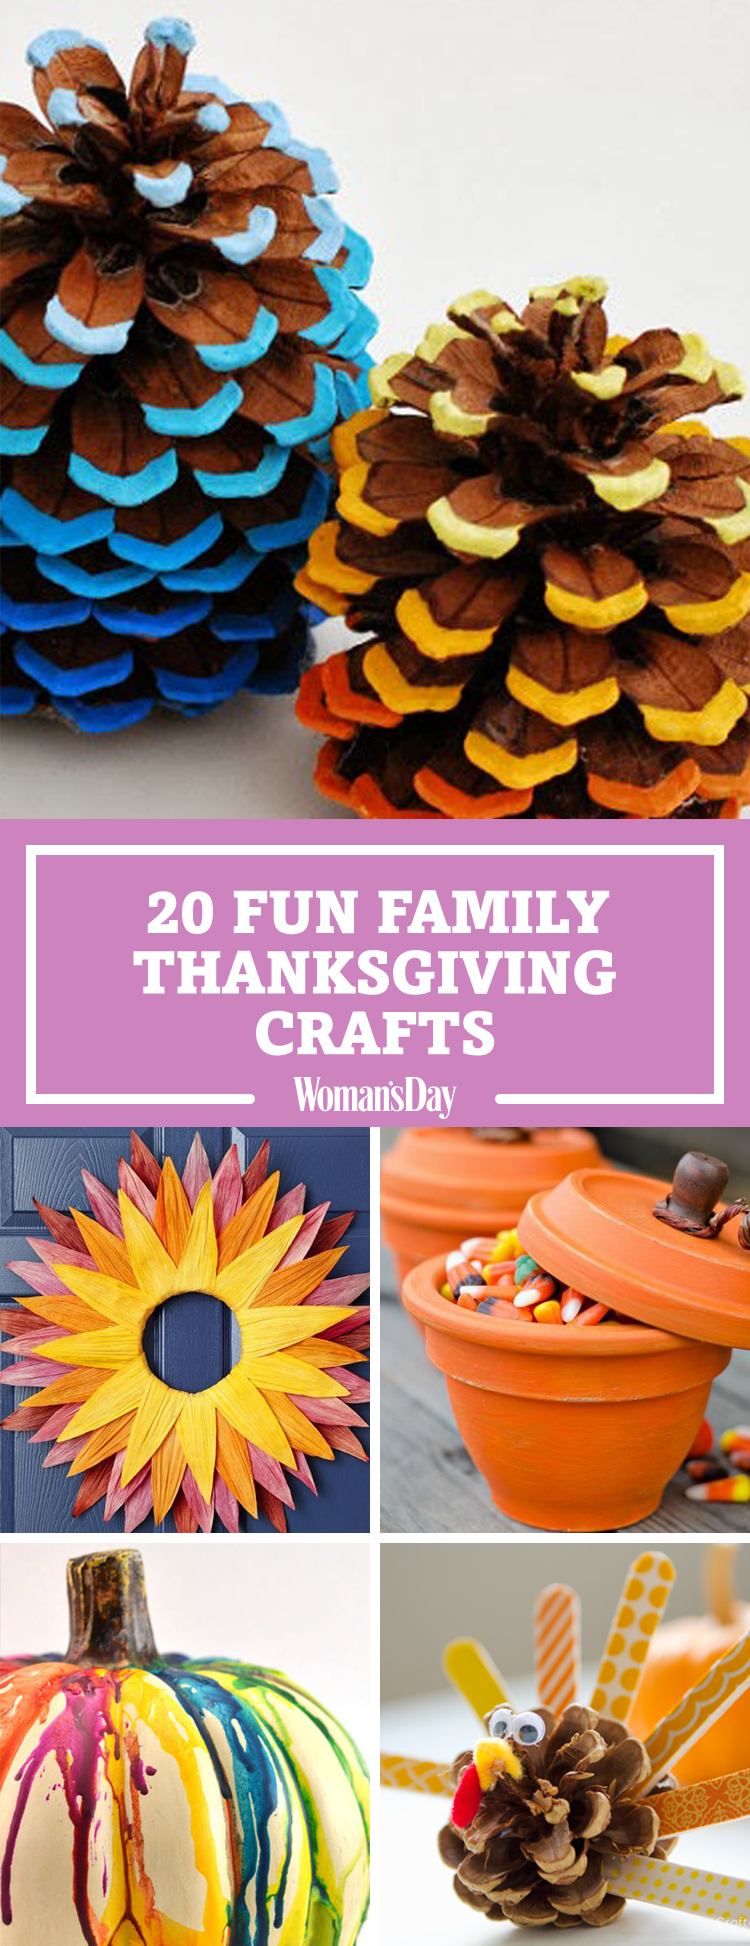 Cute Easy Thanksgiving Crafts Home Decorating Ideas